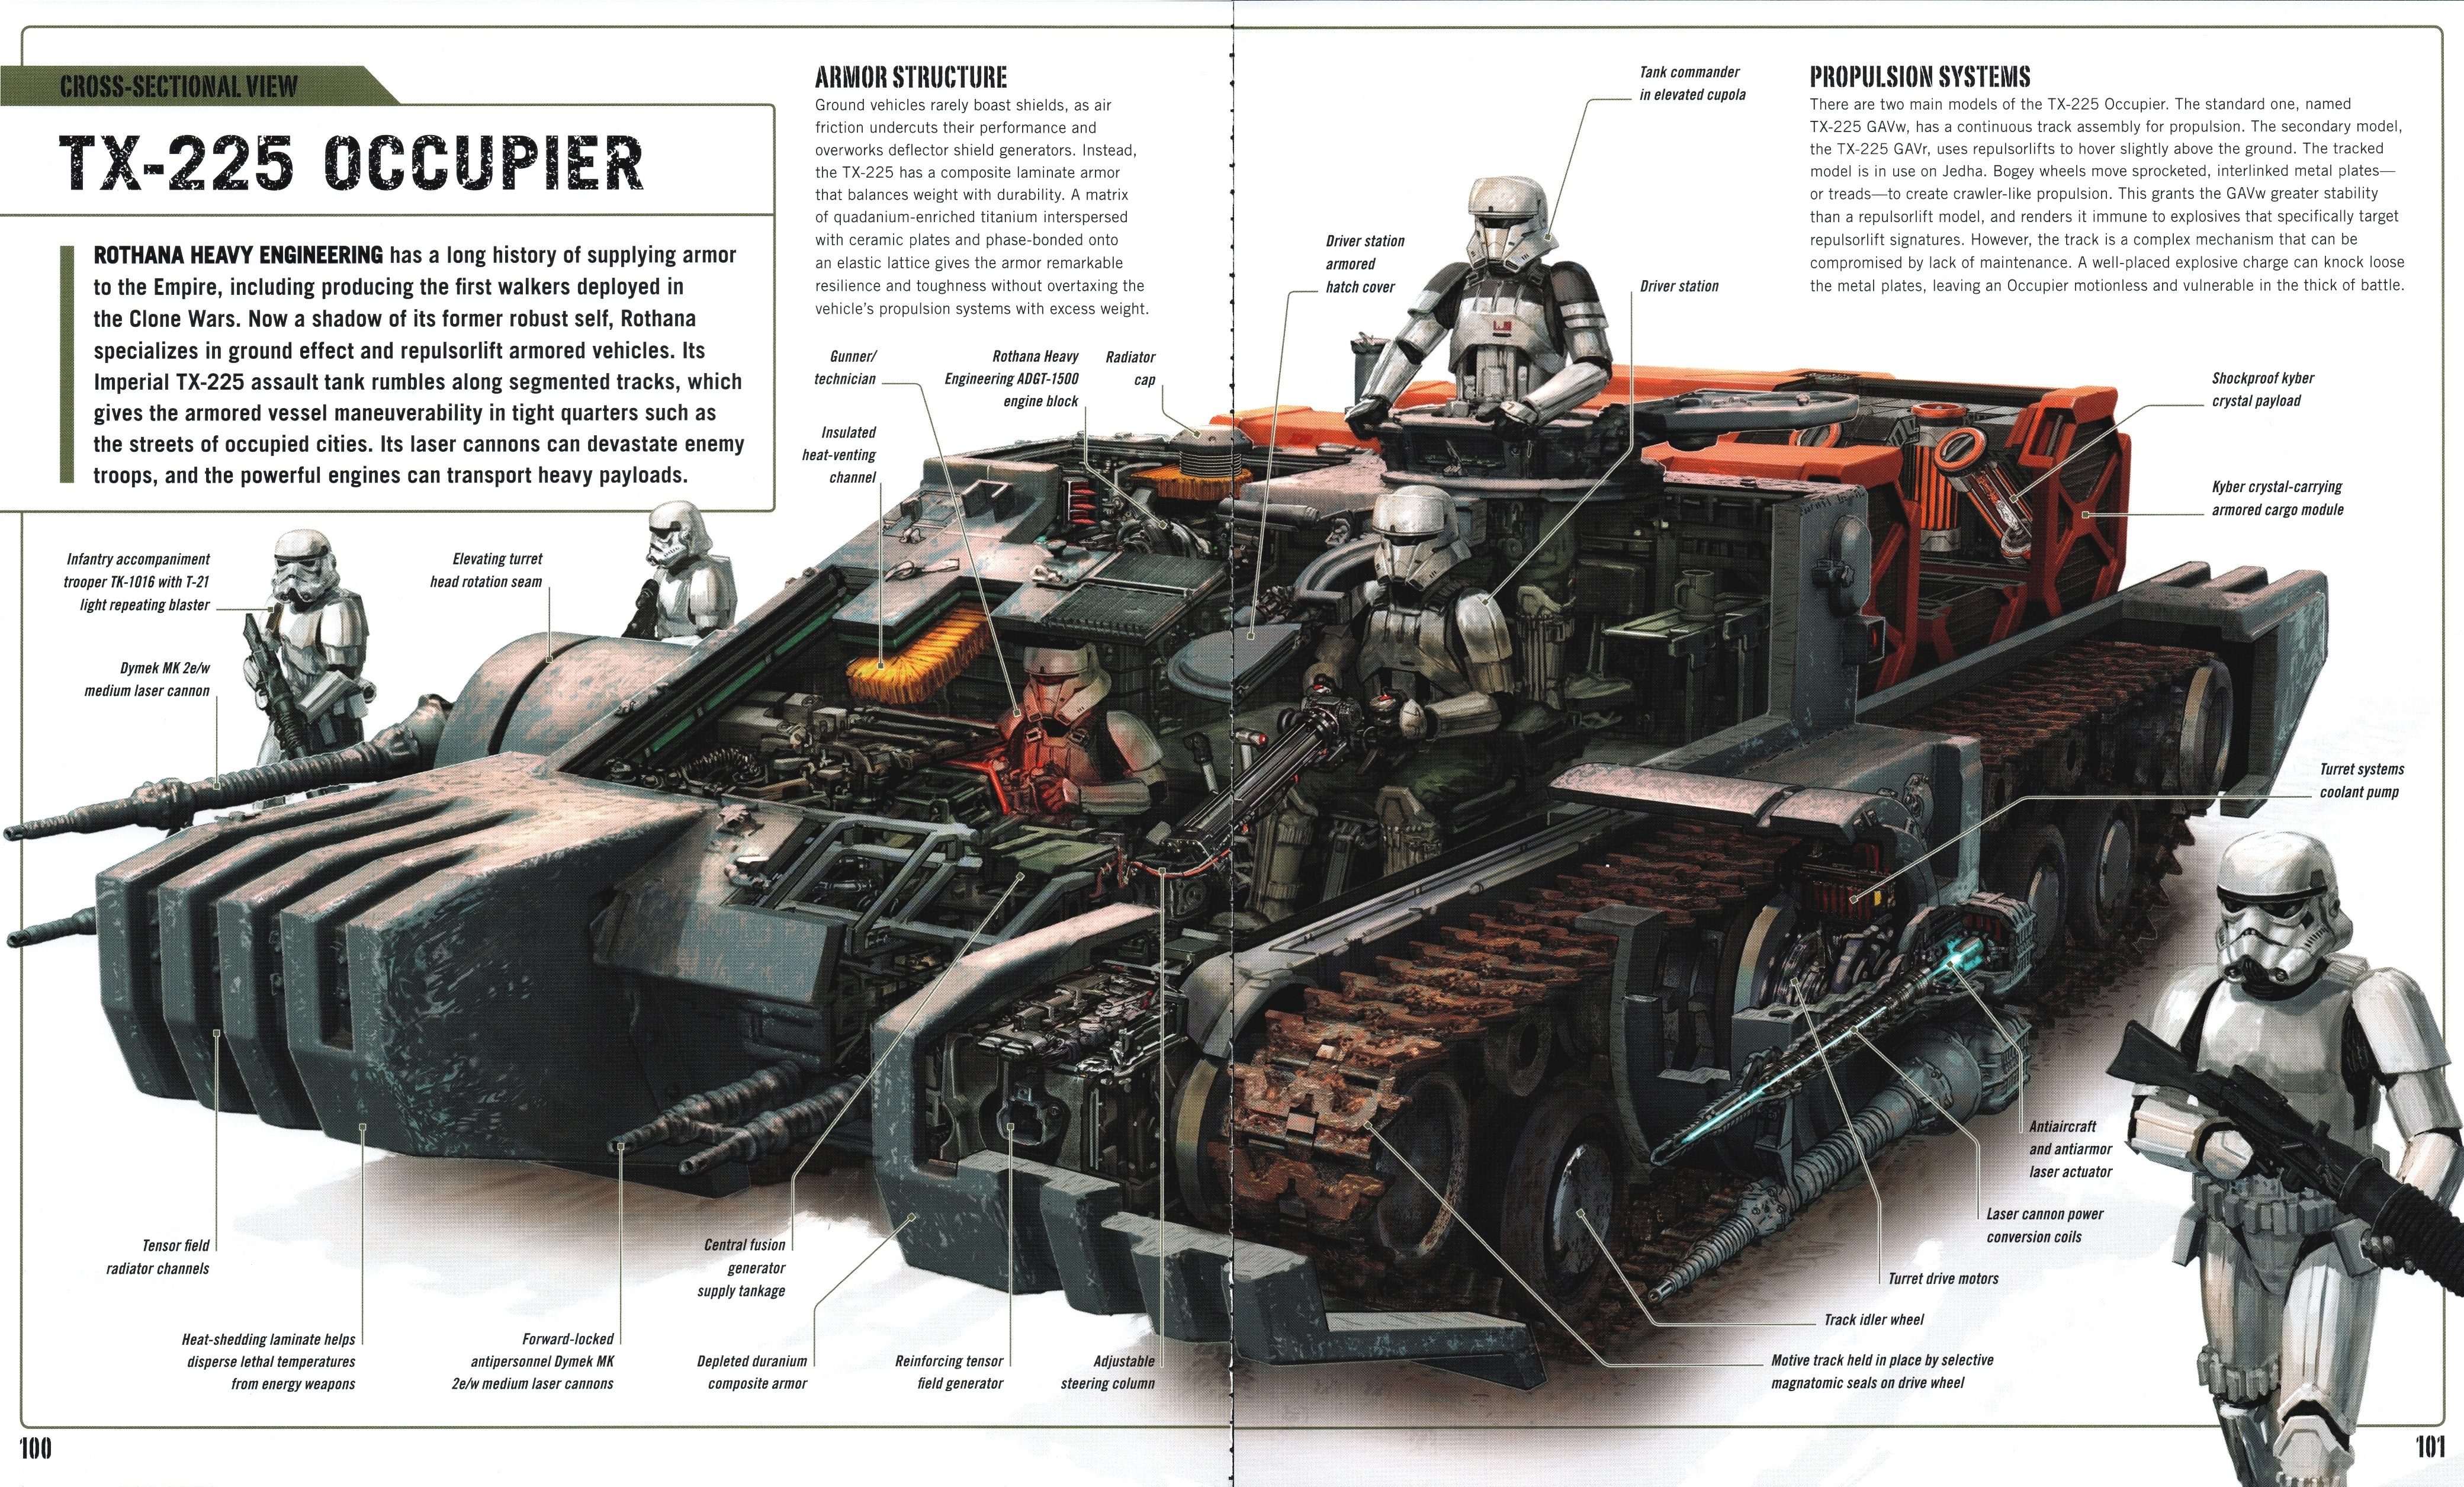 Rogue One Ultimate Visual Guide (b0bafett_Empire) p100-101